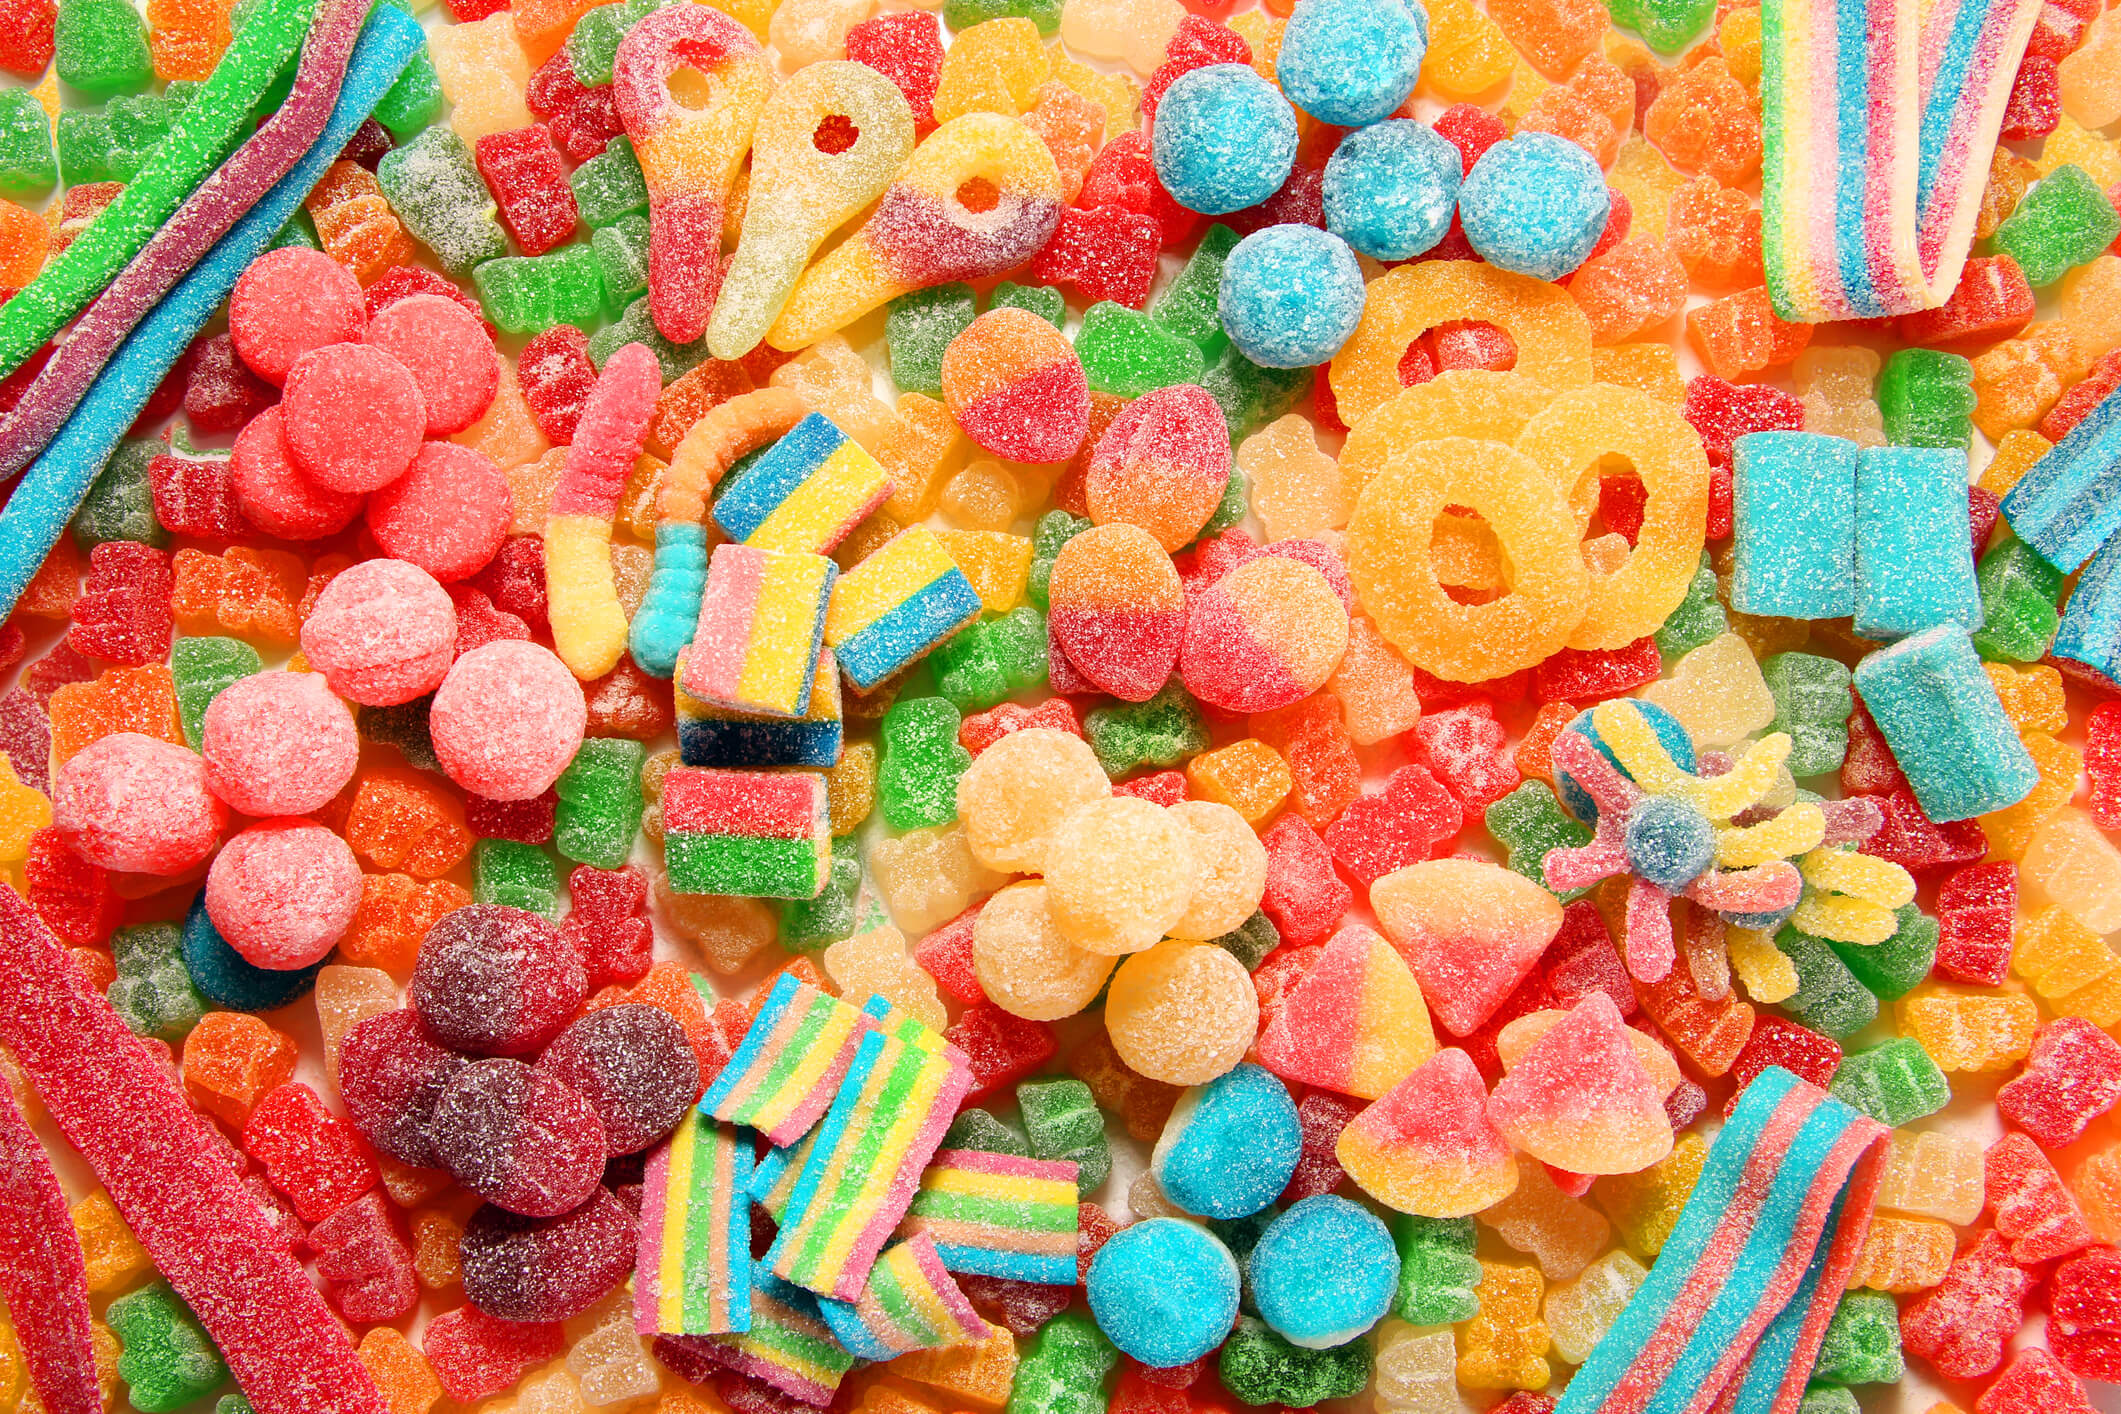 Assorted variety of sour candies includes extreme sour soft fruit chews, keys, tart candy belts and straws